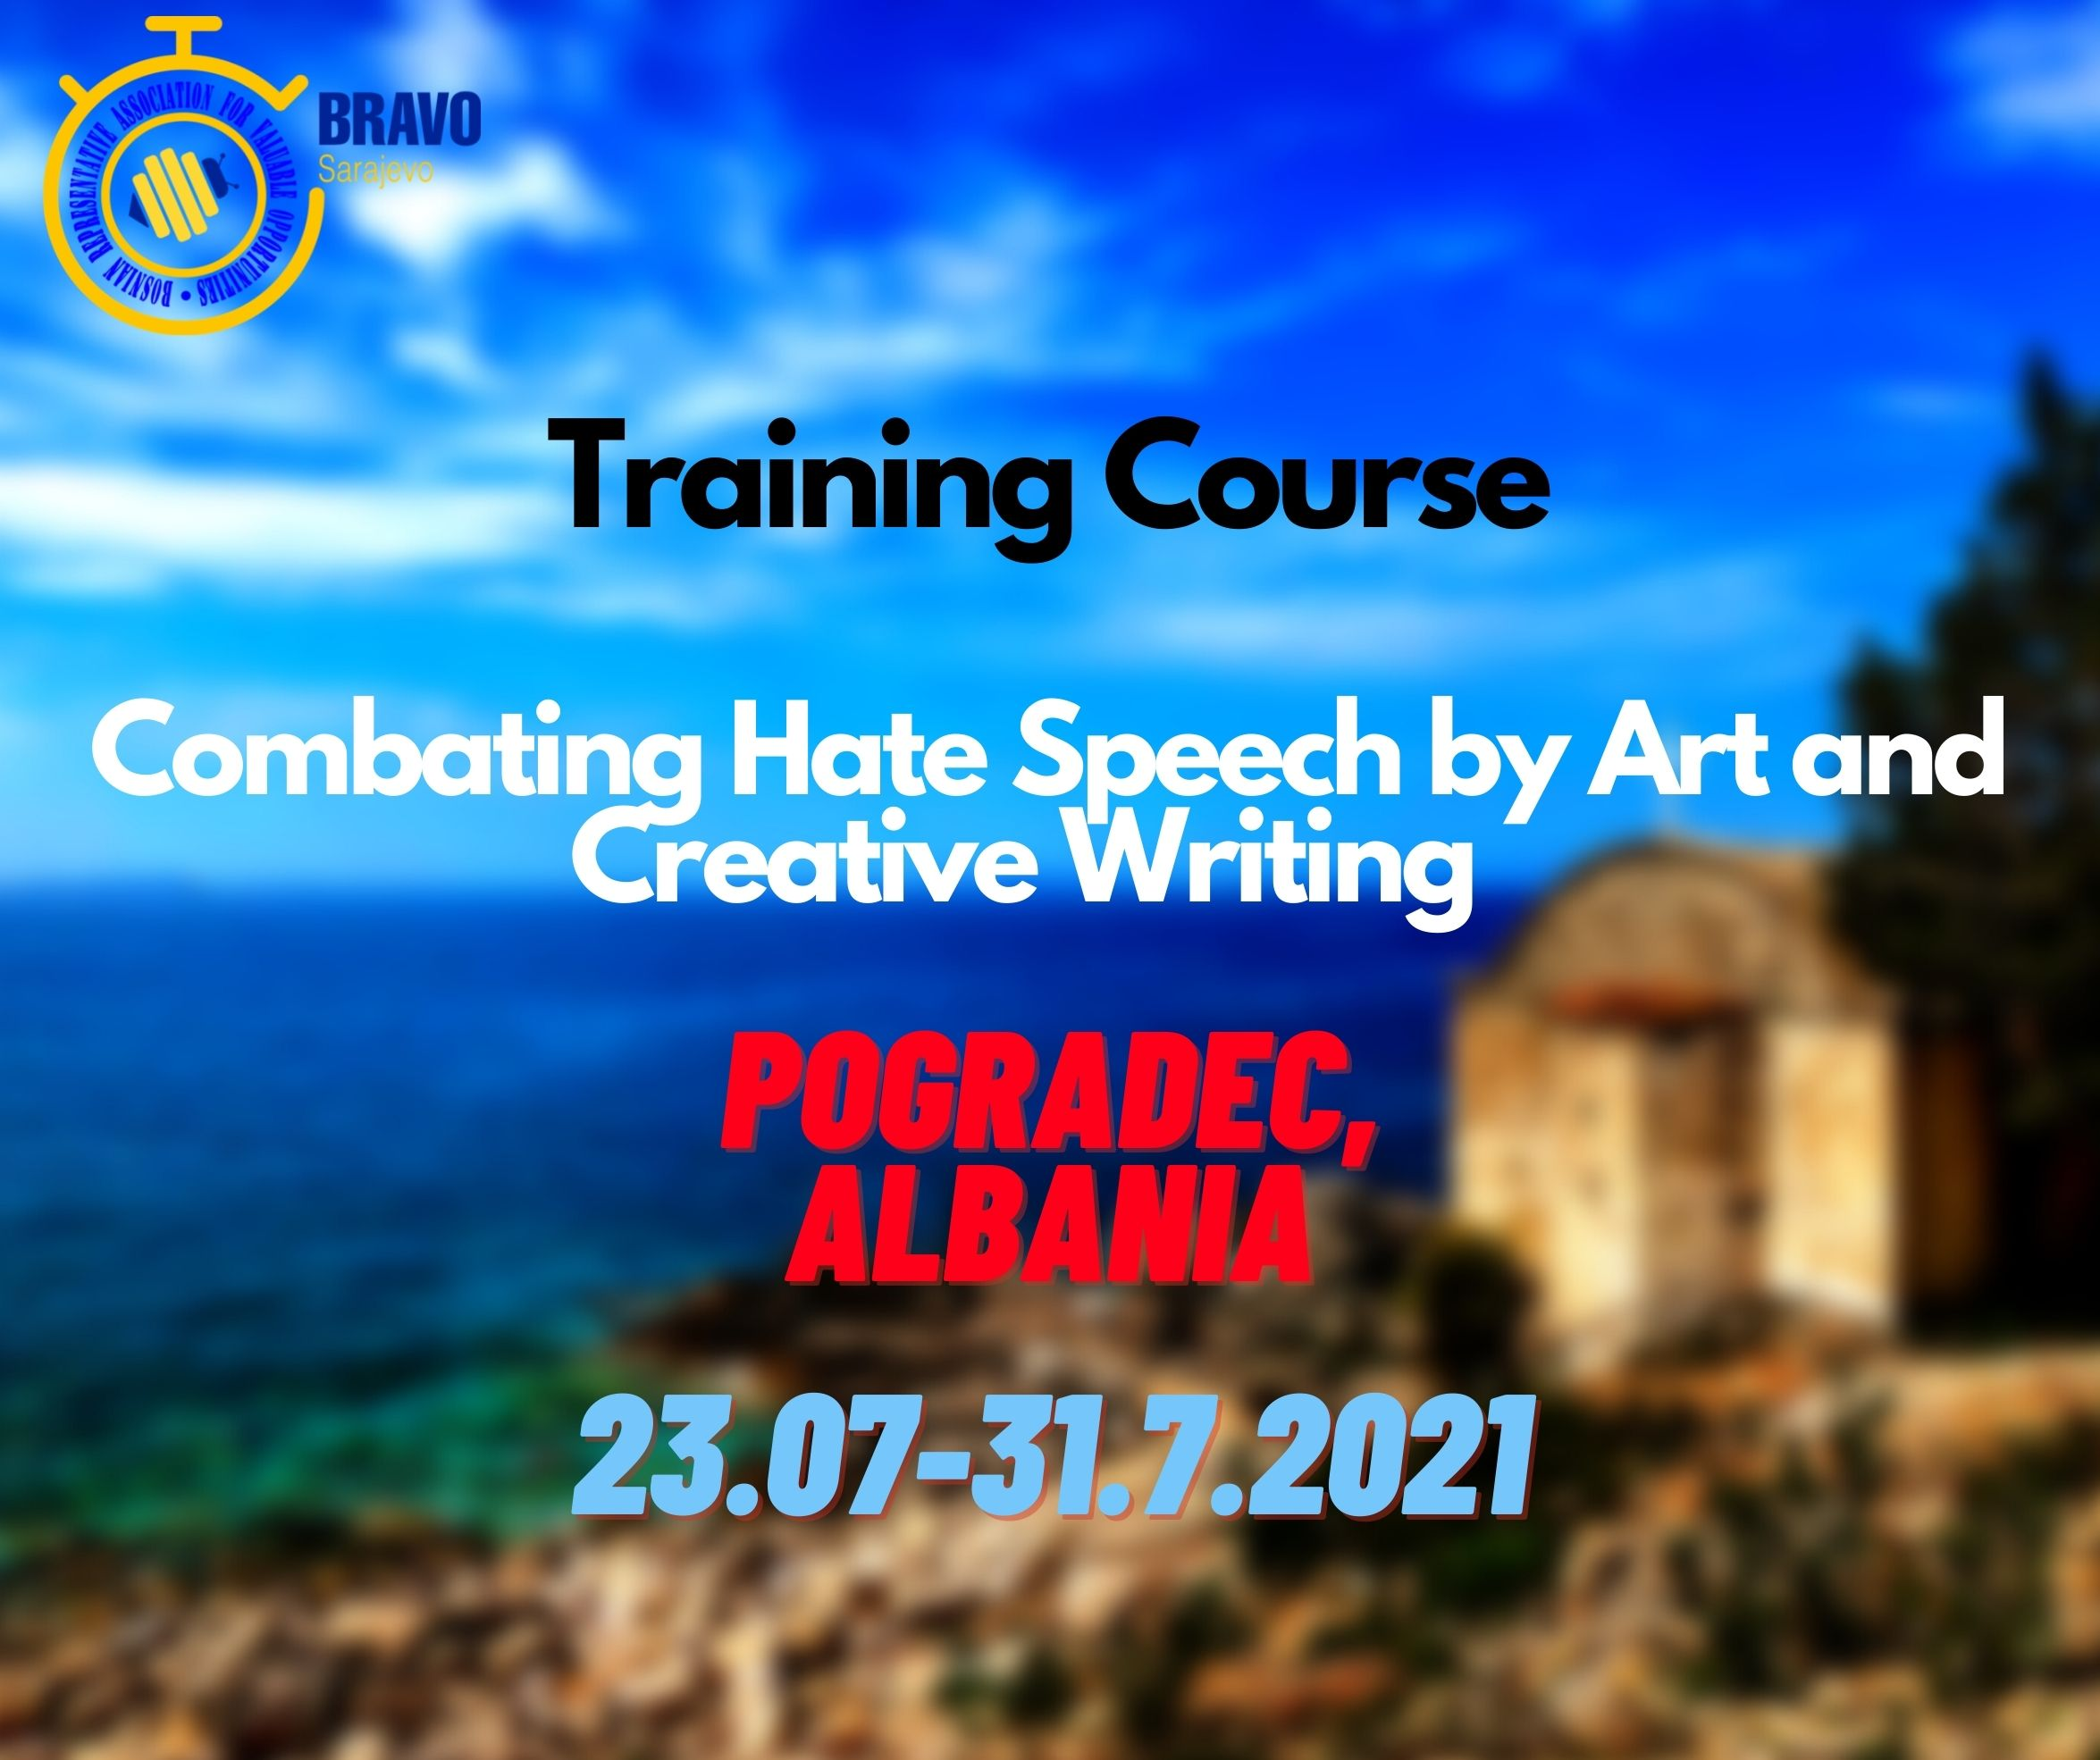 Open Call for 5 Participants from Bosnia and Herzegovina for Training Course in Pogradec, Albania